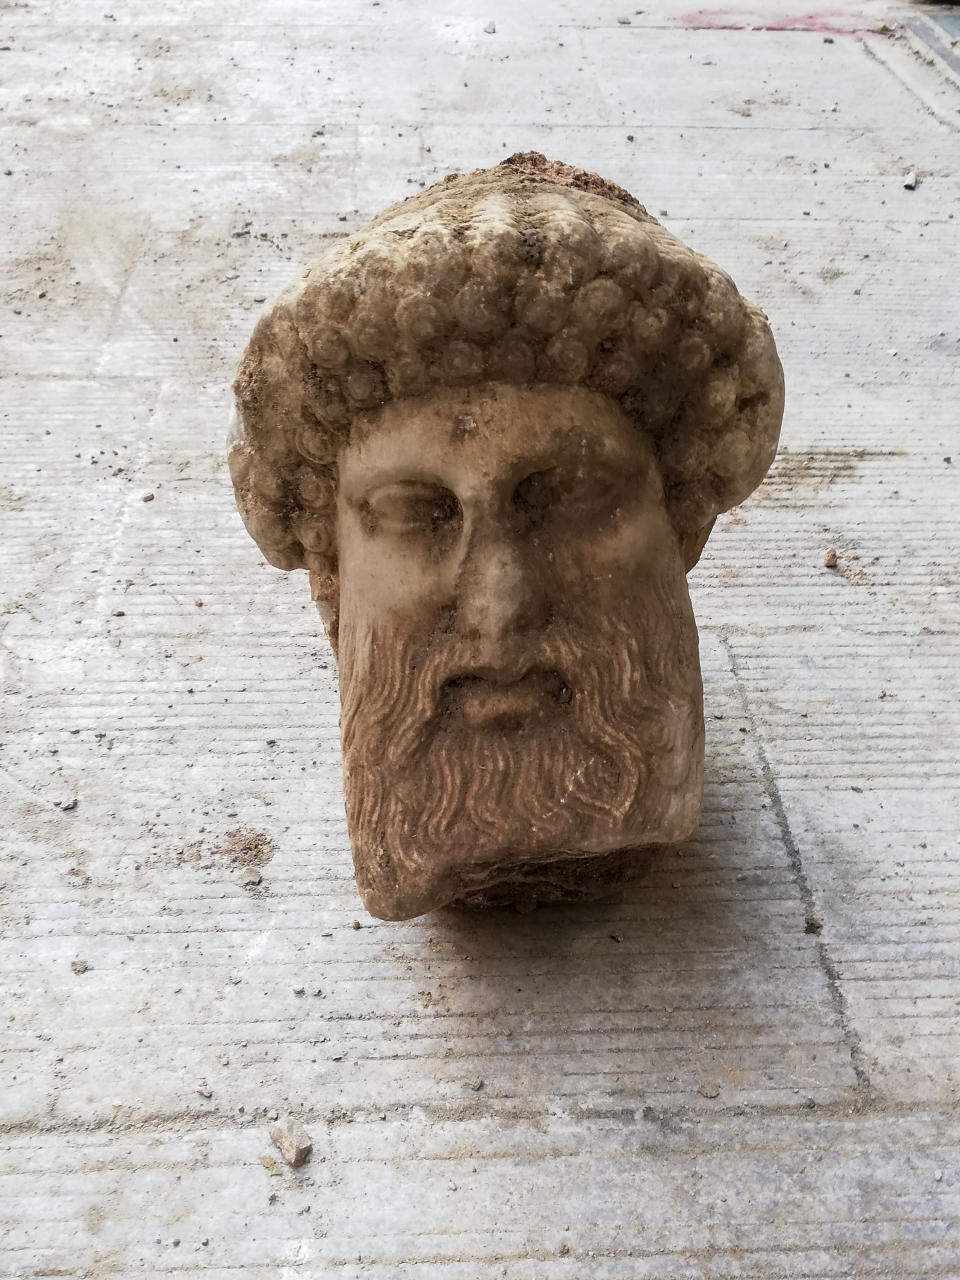 "In this undated photo, provided by the Greek Culture Ministry on Sunday, Nov. 15, 2020, a head of the ancient god Hermes is pictured after being found during sewage works in central Athens. The ministry said Sunday that the head, depicting Hermes at a ""mature age"", one of many that served as street markers in ancient Athens, appears to be from around 300 BC, that is, either from the late 4th century BC, or the early 3rd century. (Greek Culture Ministry via AP)"